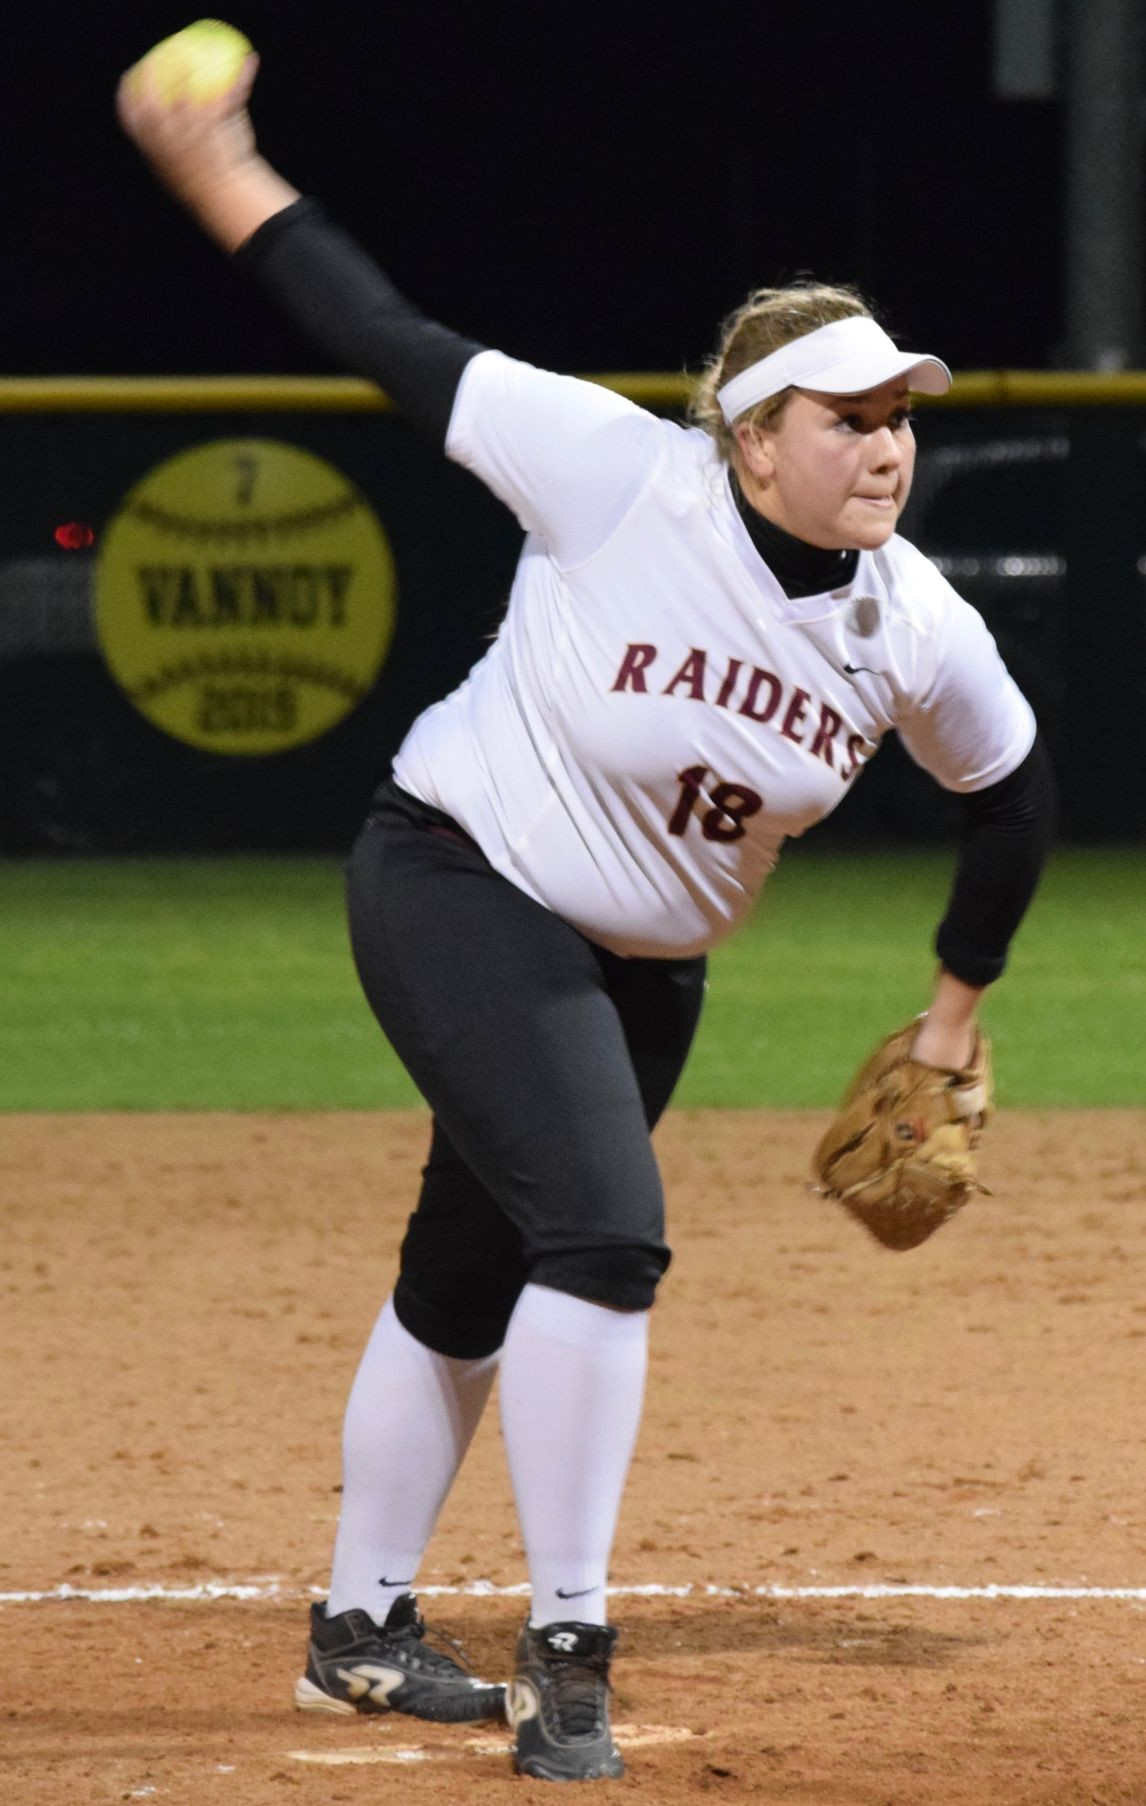 Lexi Shafer is 5-1 with a 3.08 ERA and 31 strikeouts in 38.2 innings for Rouse this season